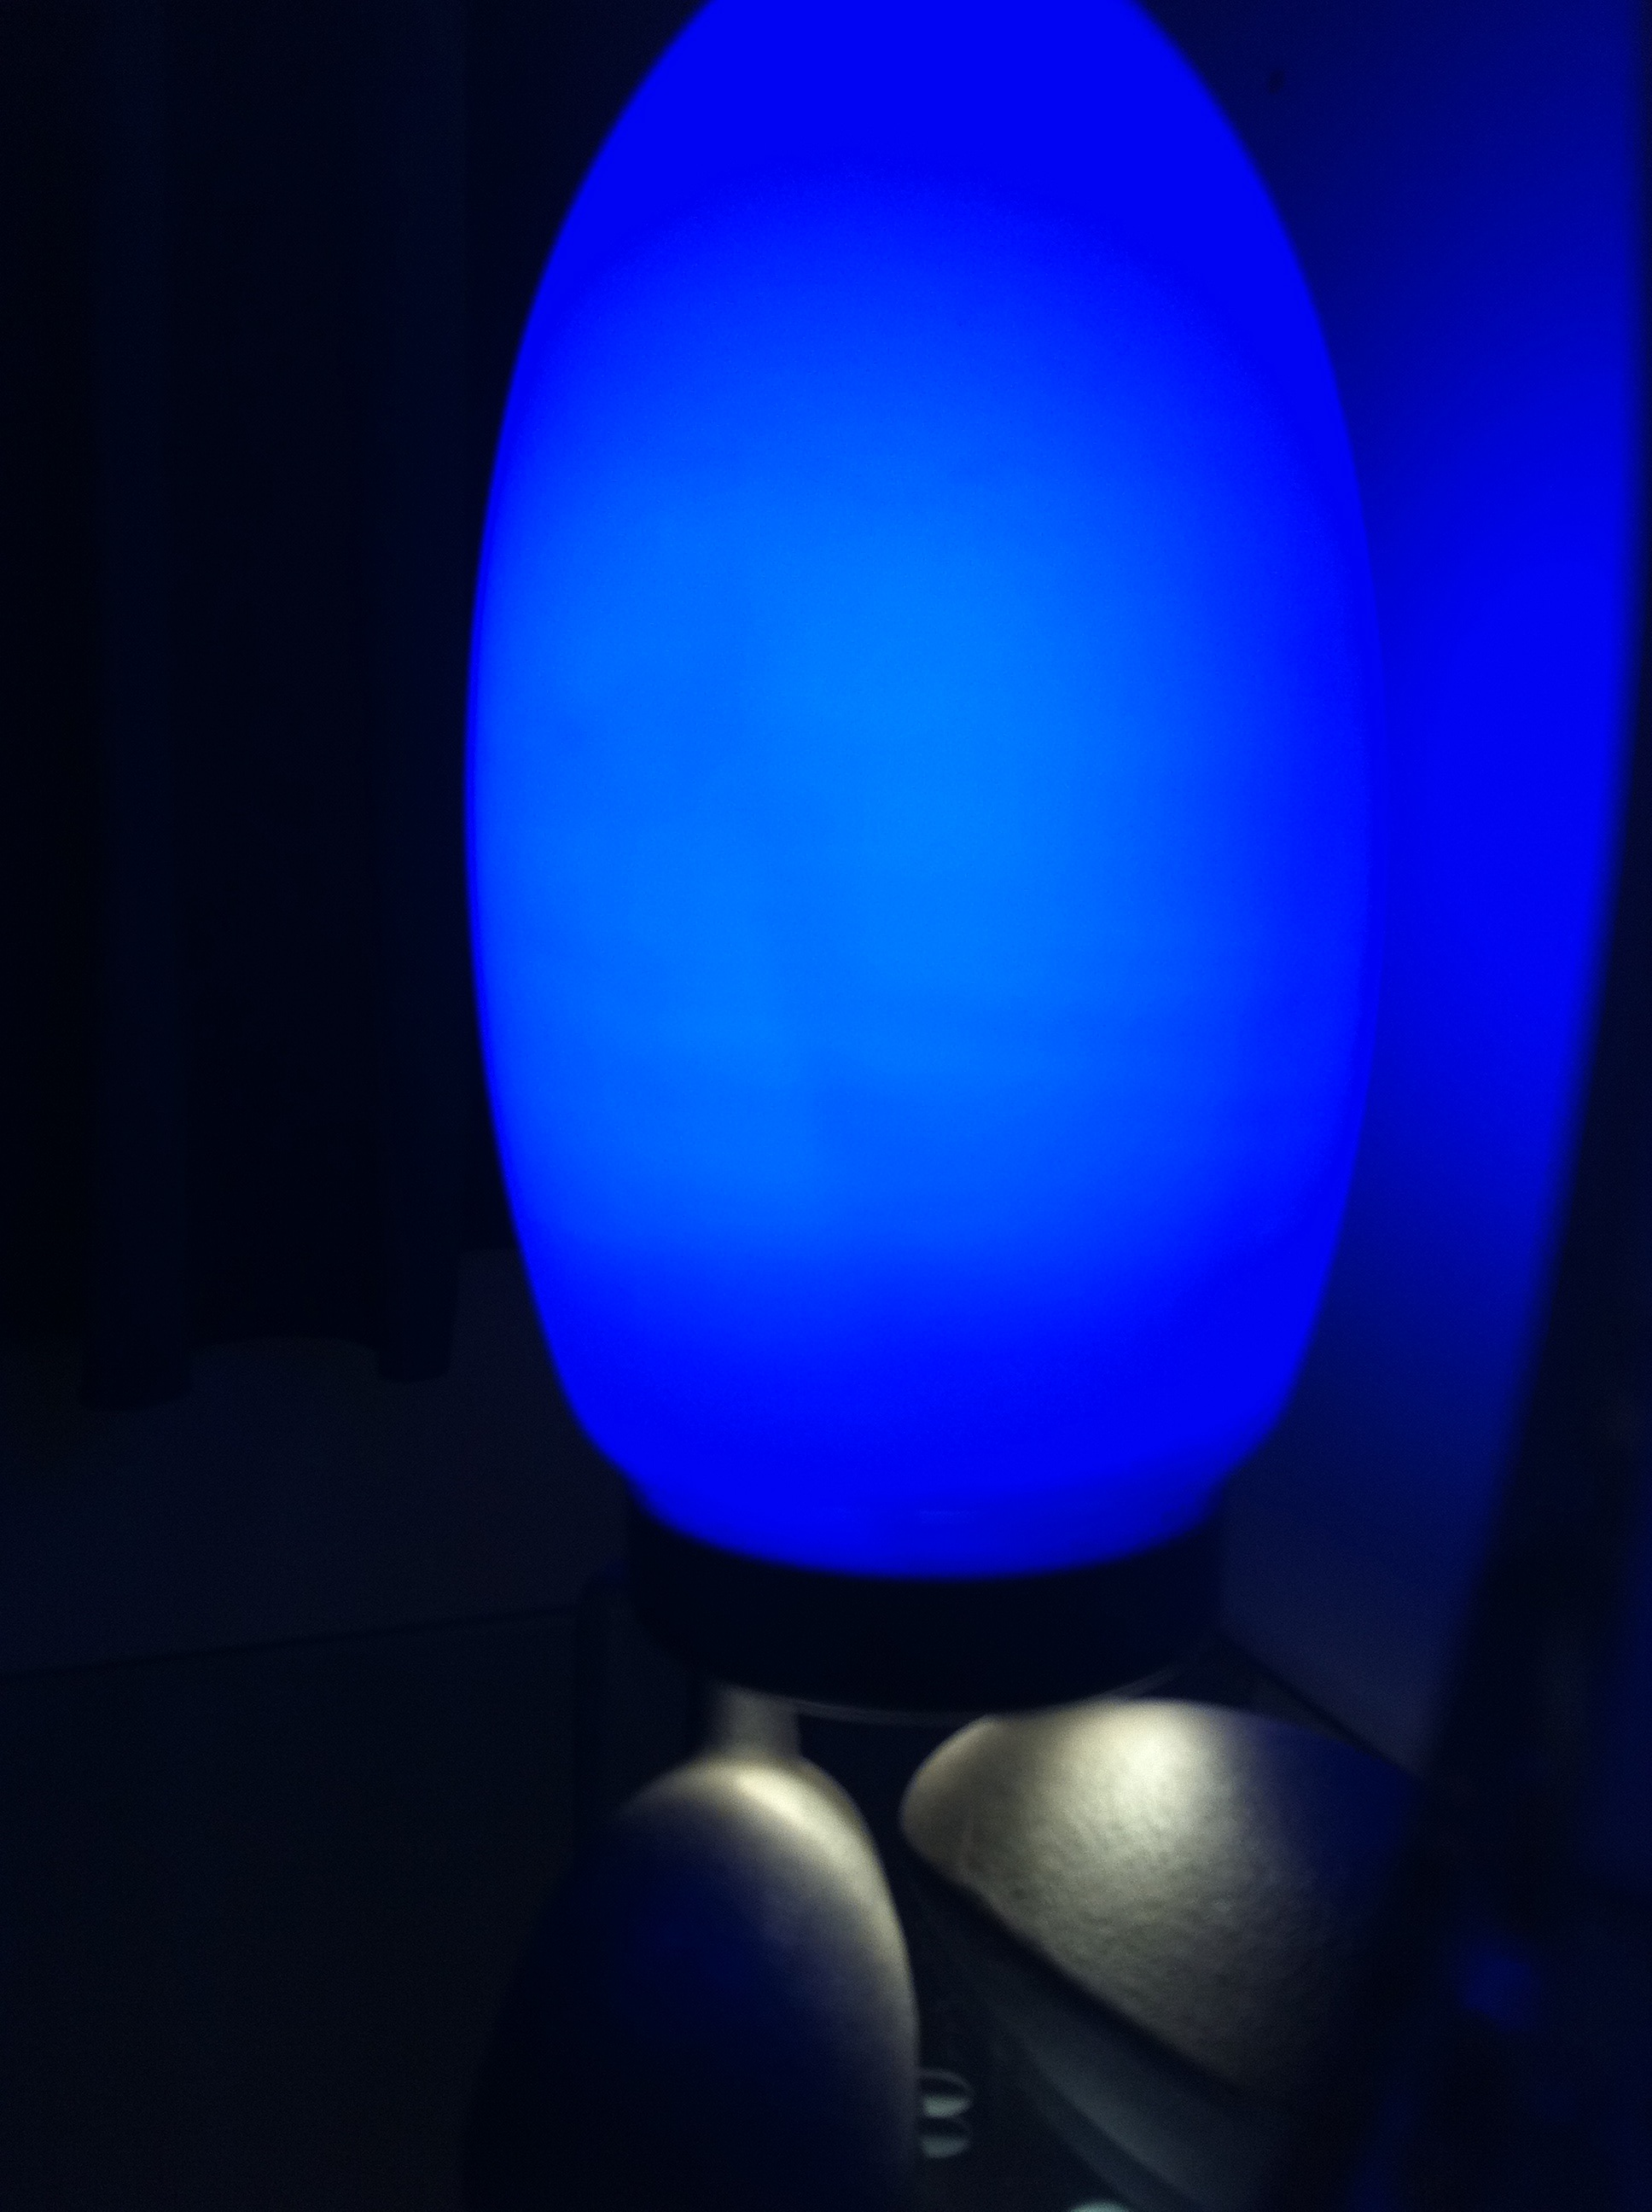 Blue light, Abstract, Blue, Light, HQ Photo